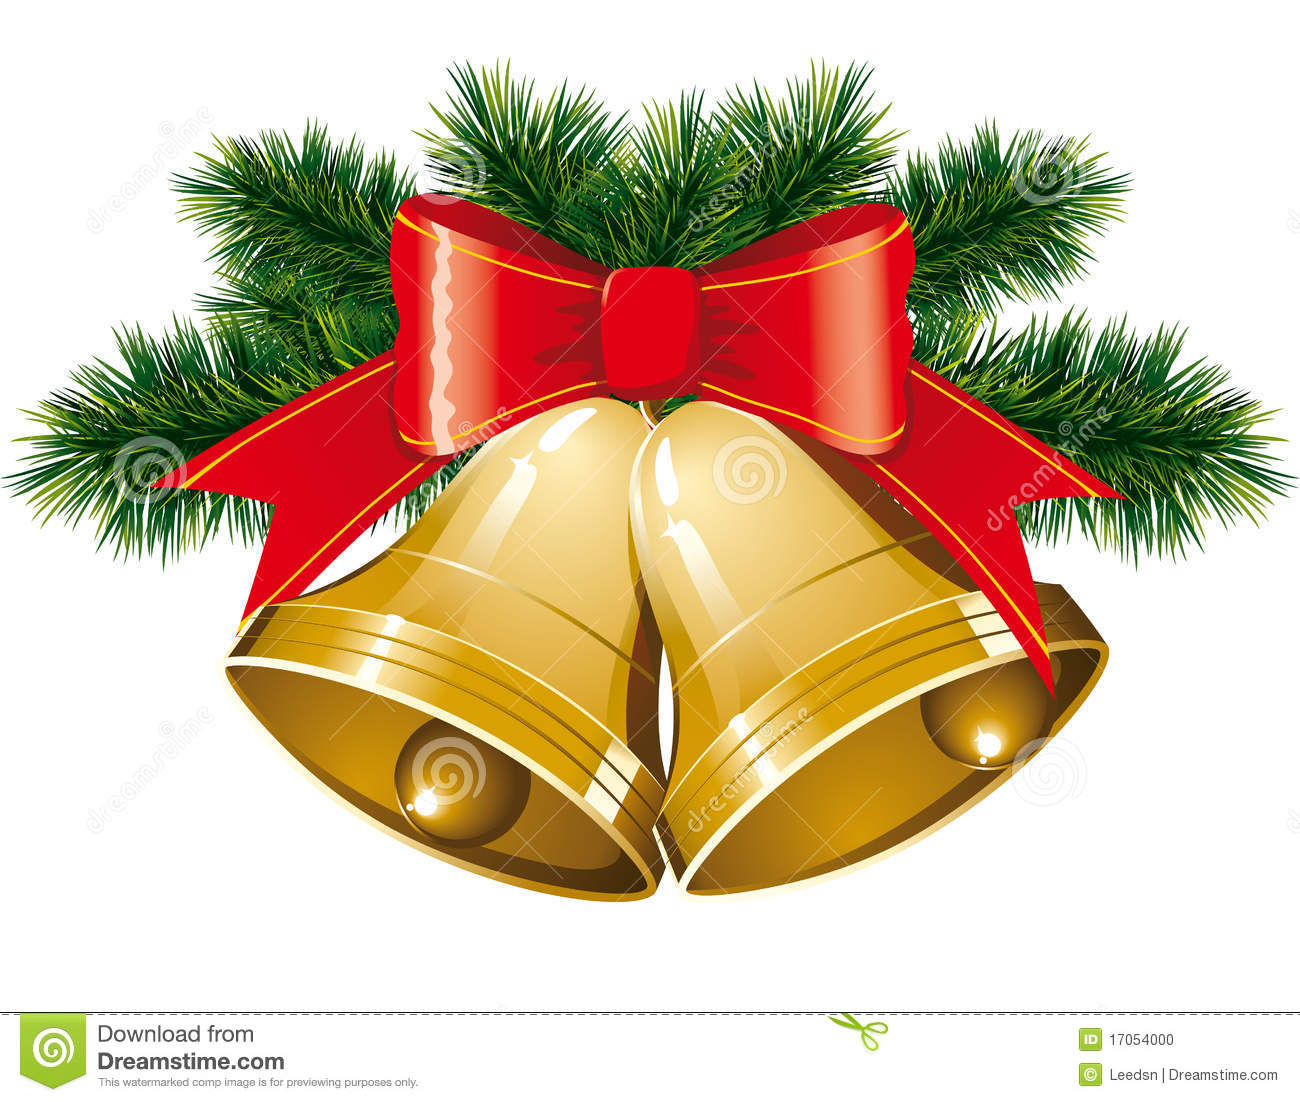 Christmas Bells With Christmas Tree Stock Photo - Image: 17054000